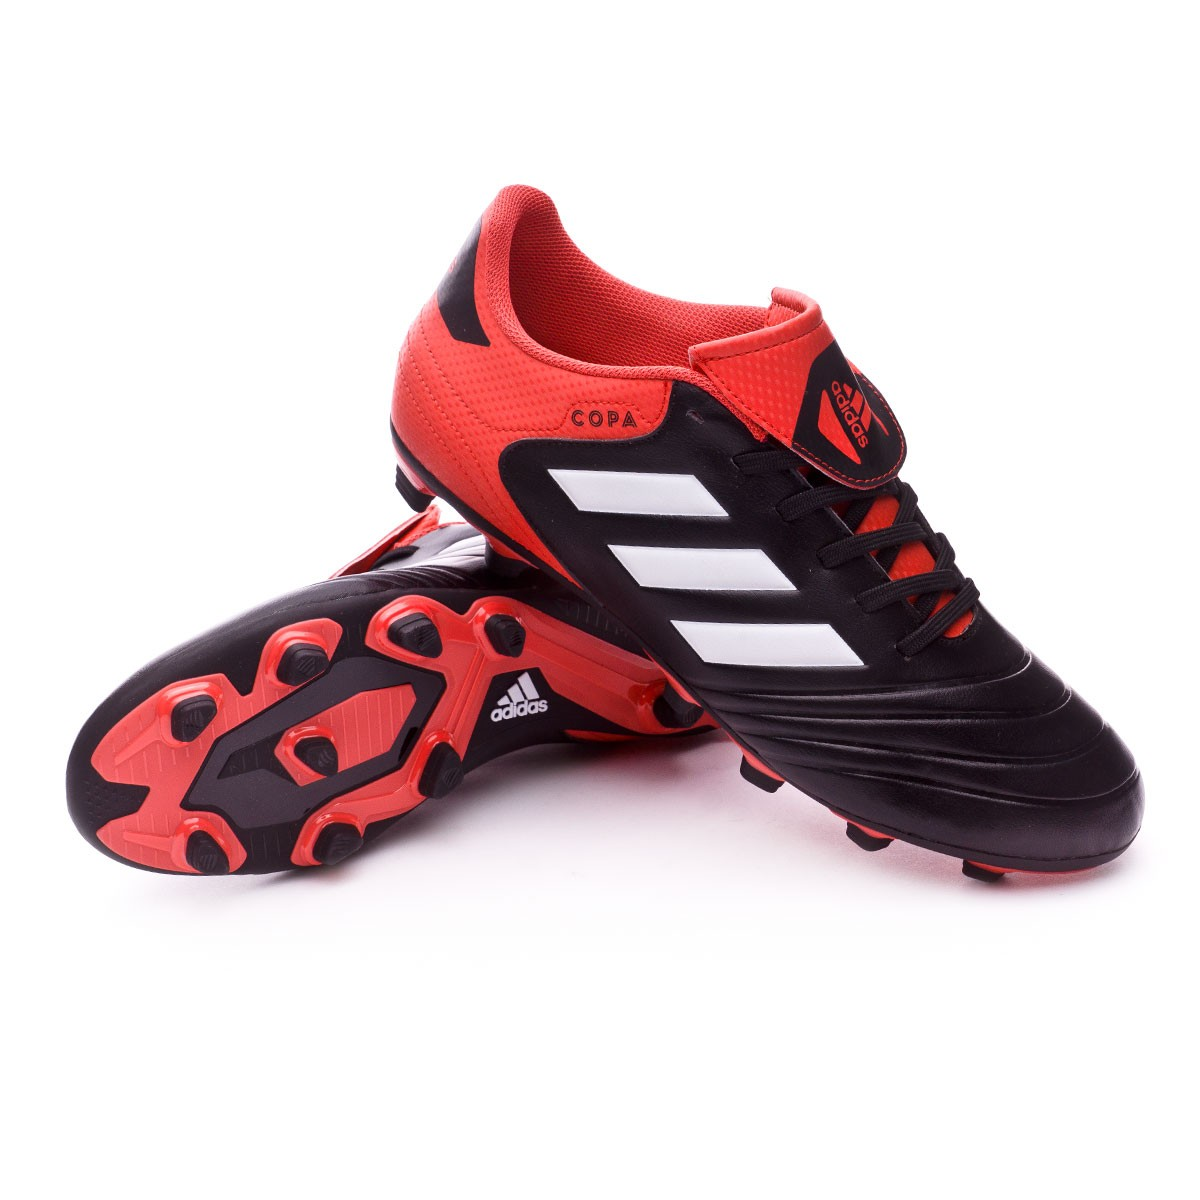 Boot adidas Copa 18.4 FxG Core black-White-Real coral - Foot